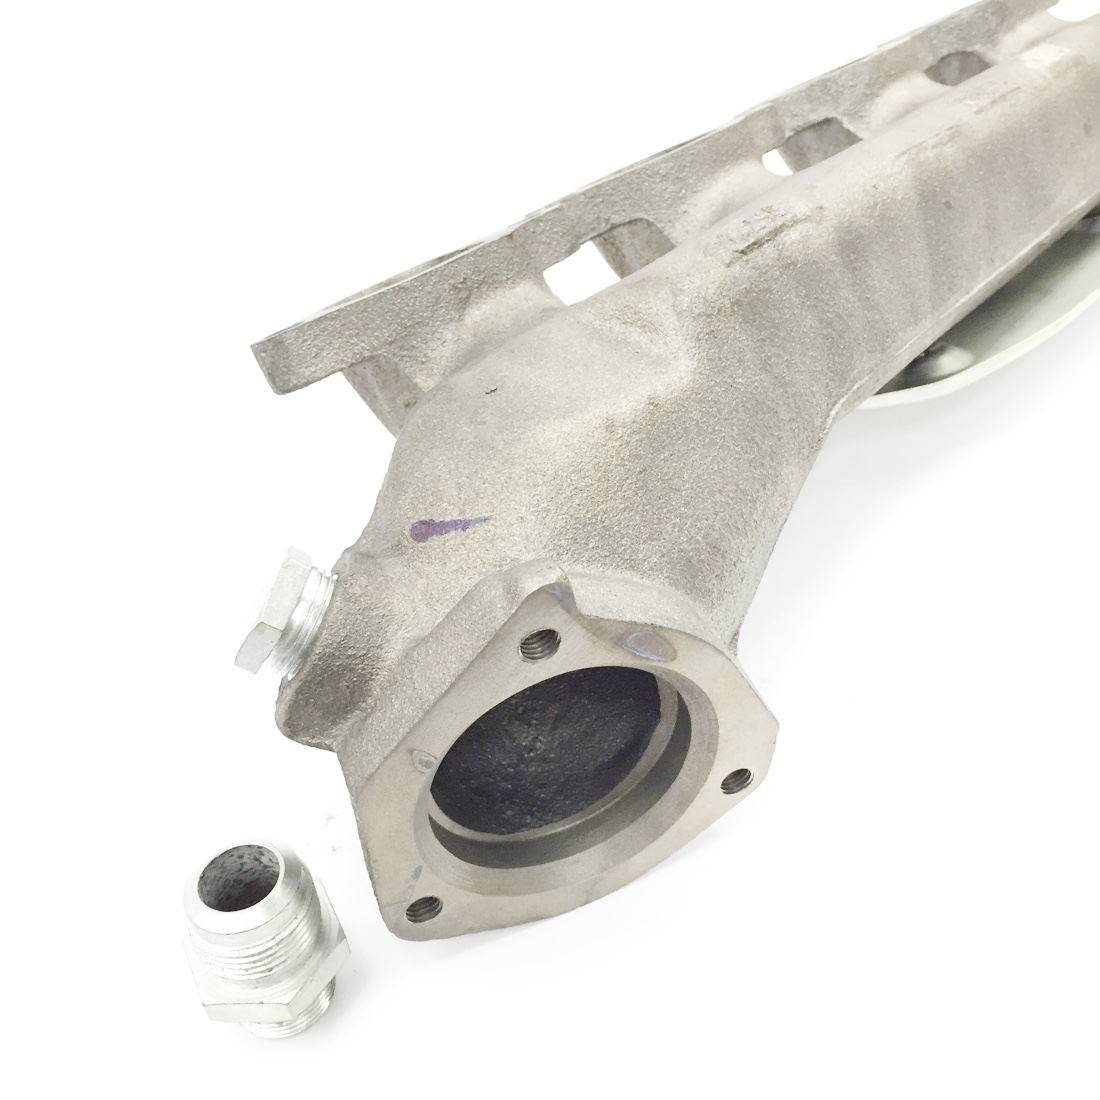 Driver's Side Exhaust Manifold 1996-2000 CHEVROLET 2500